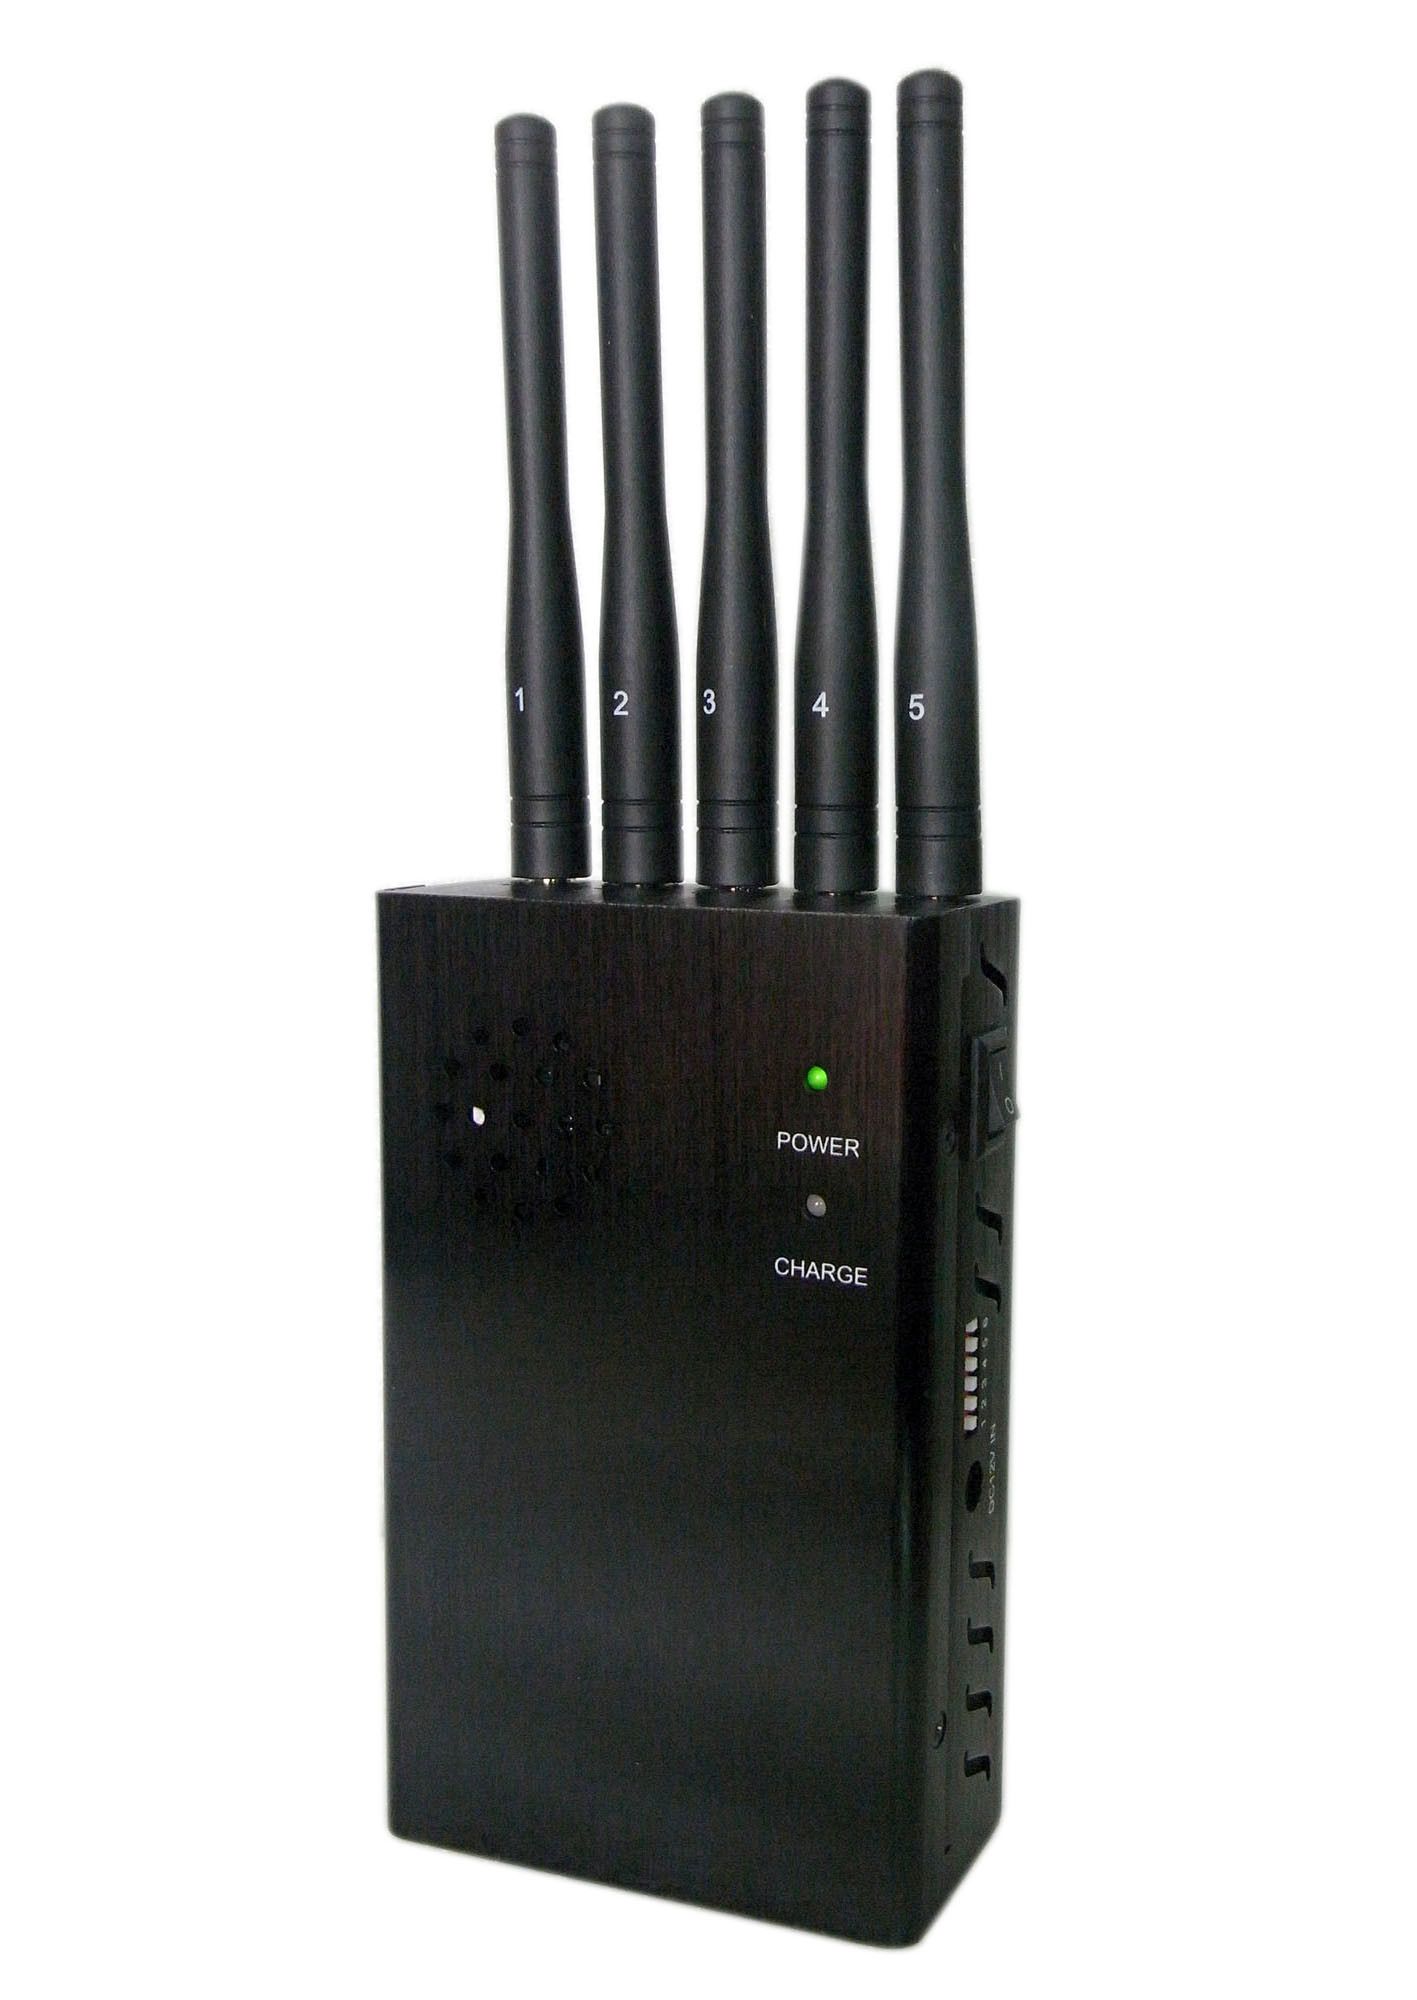 phone jammer china intellectual - China Portable 5 Antennas for All Cellular, GPS, Lojack, Alarm Jammer System, Portable Five Antenna for All Signal Jammer System, Cell Phone Jammers - China 5 Band Signal Blockers, Five Antennas Jammers